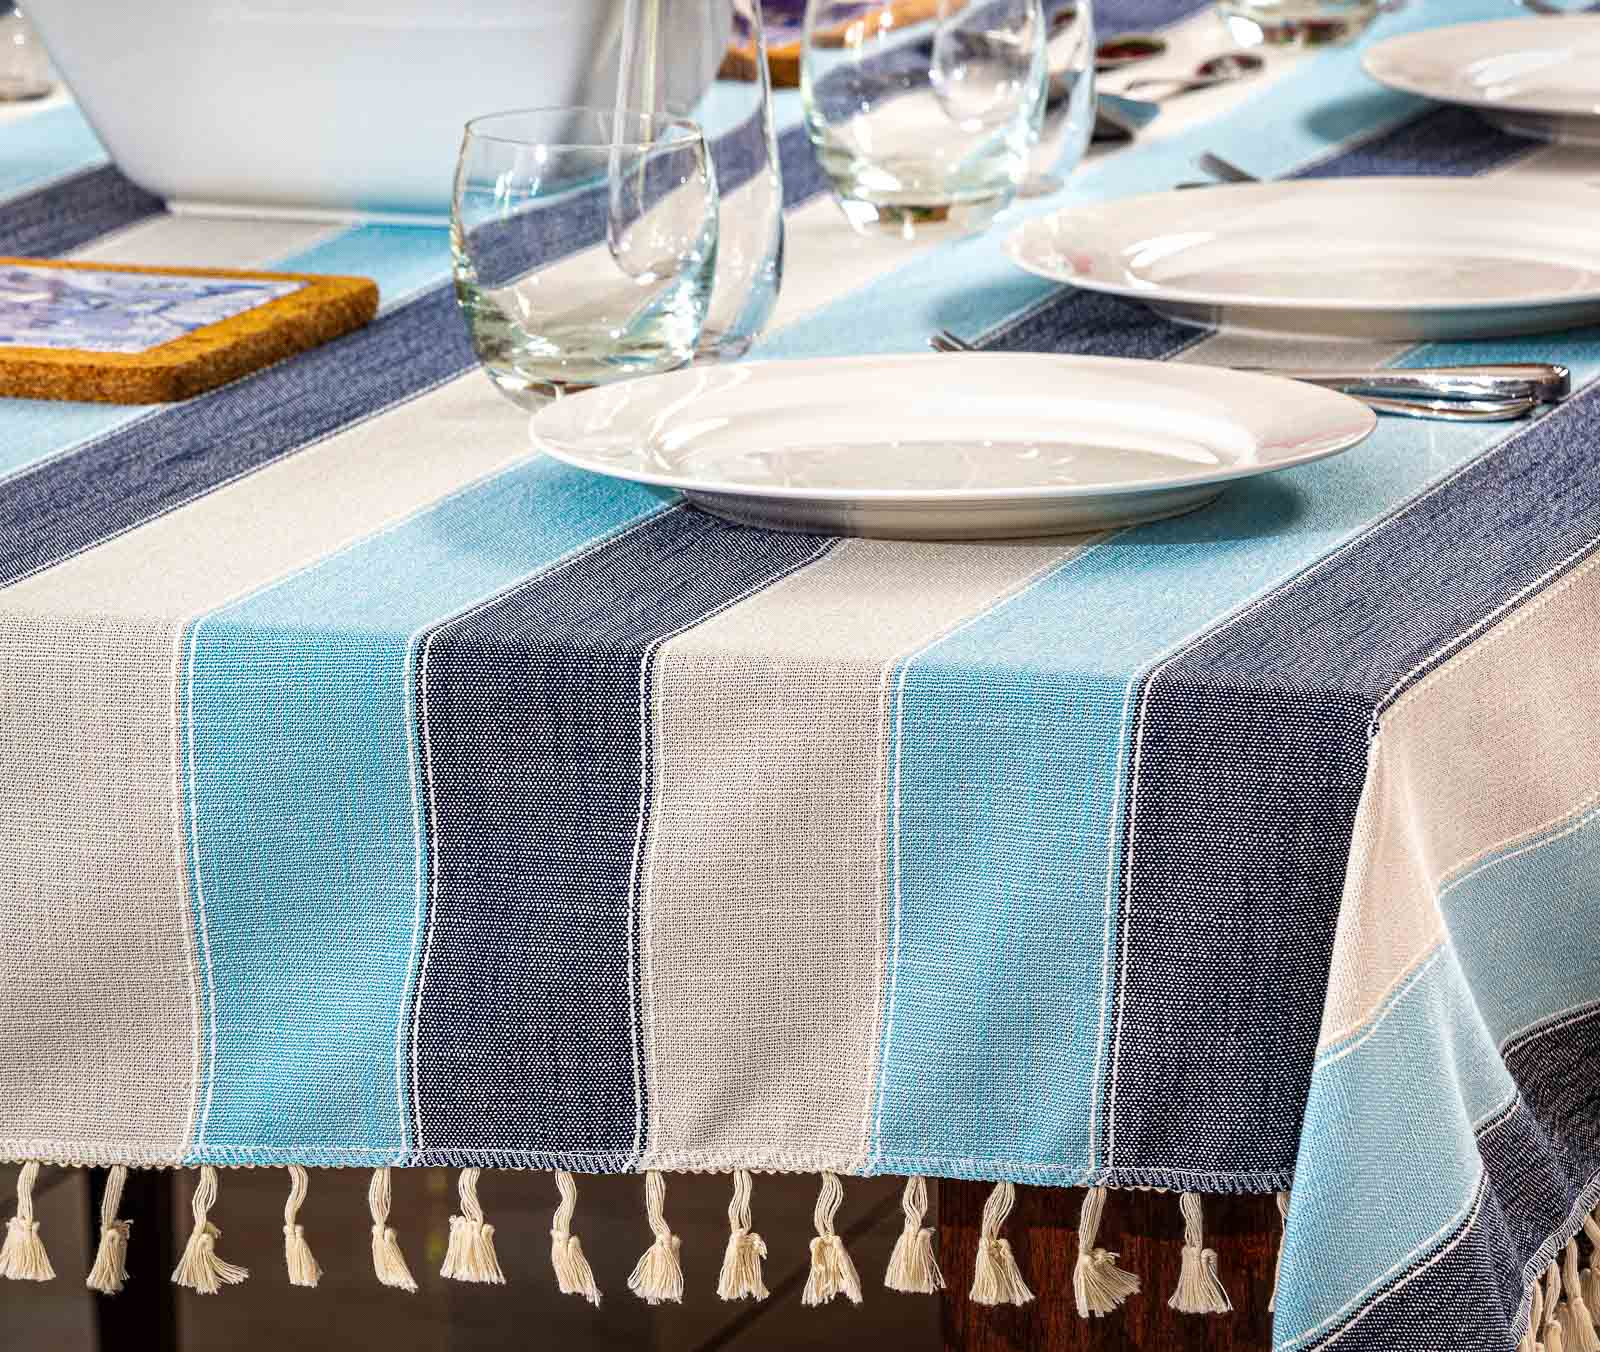 Table Cloth on table lifestyle lunch set closer view - Lifestyle product photography